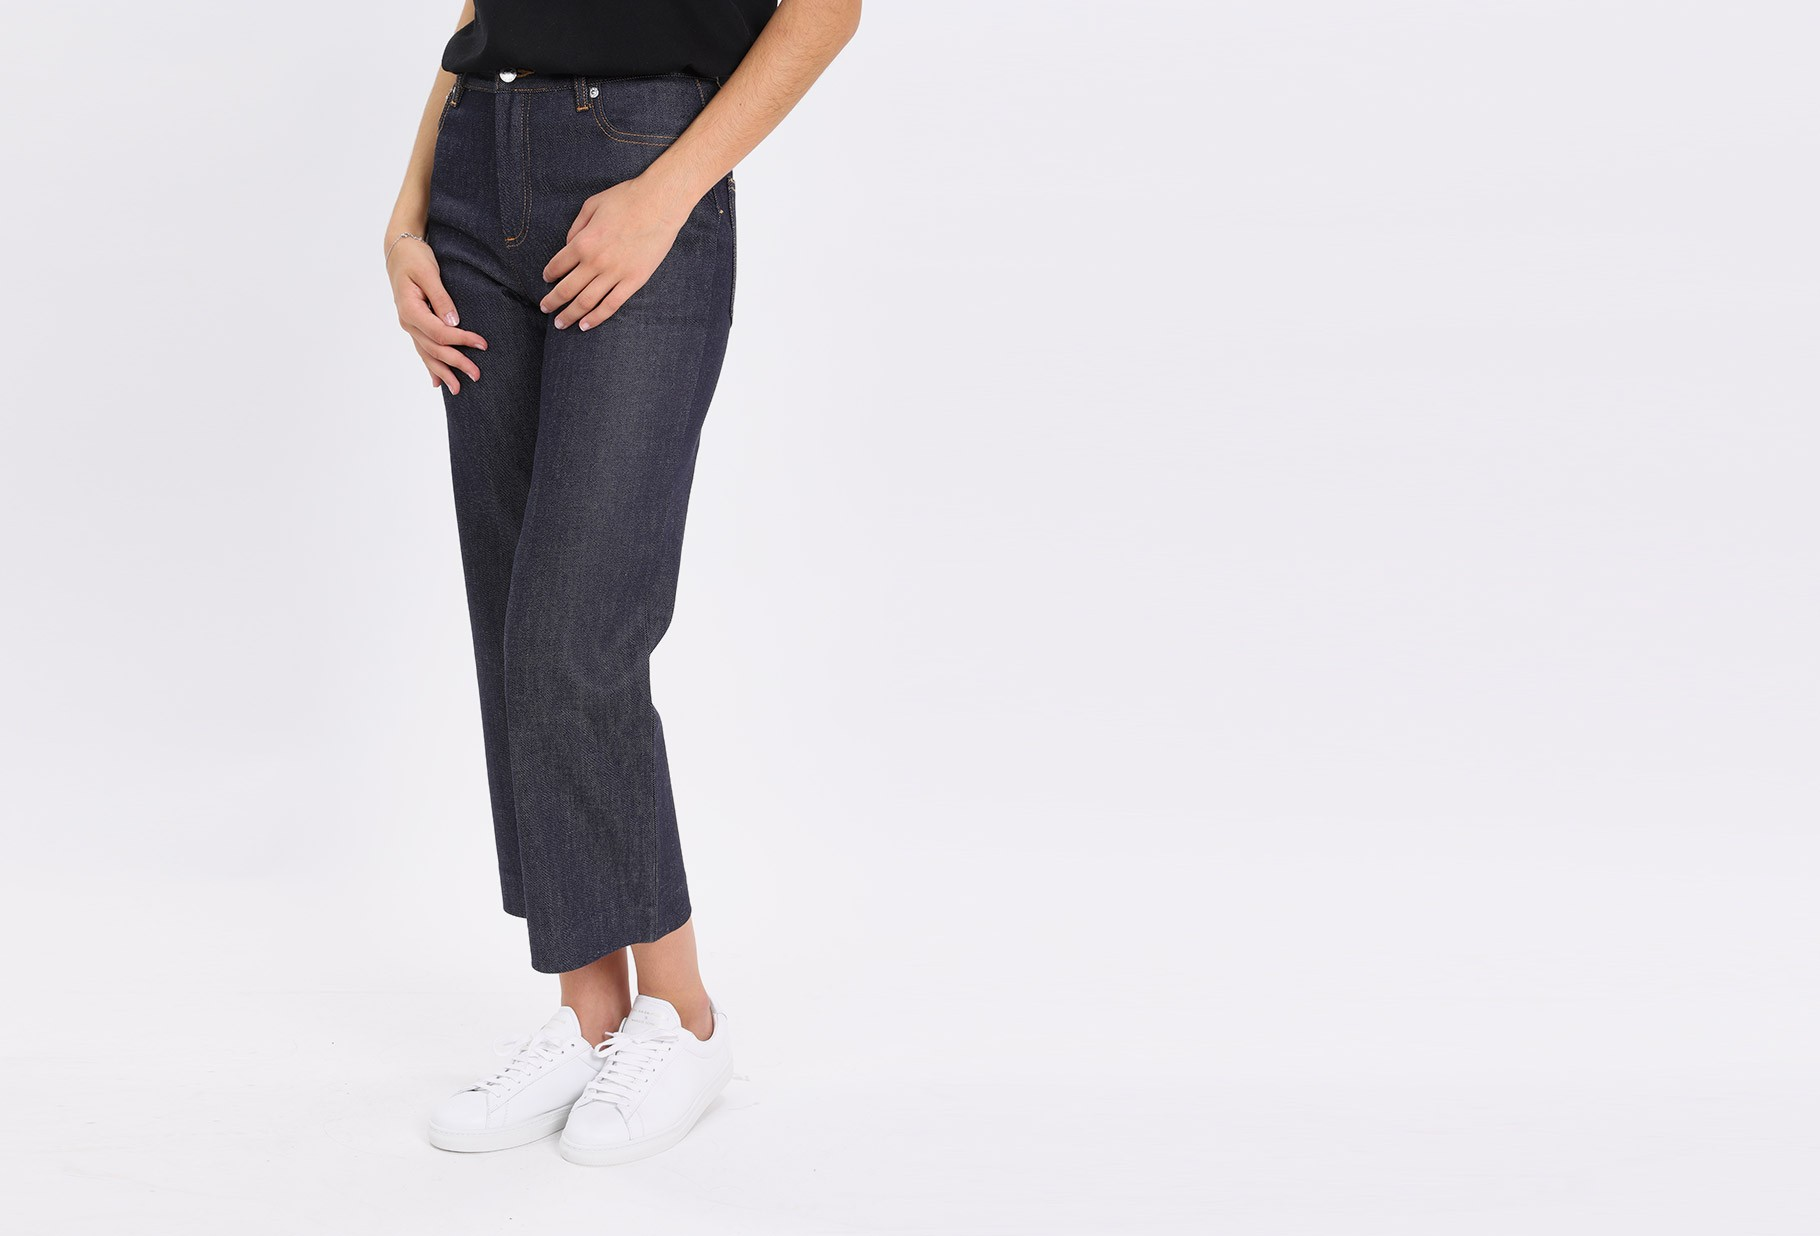 A.P.C. FOR WOMAN / Jean sailor Indigo